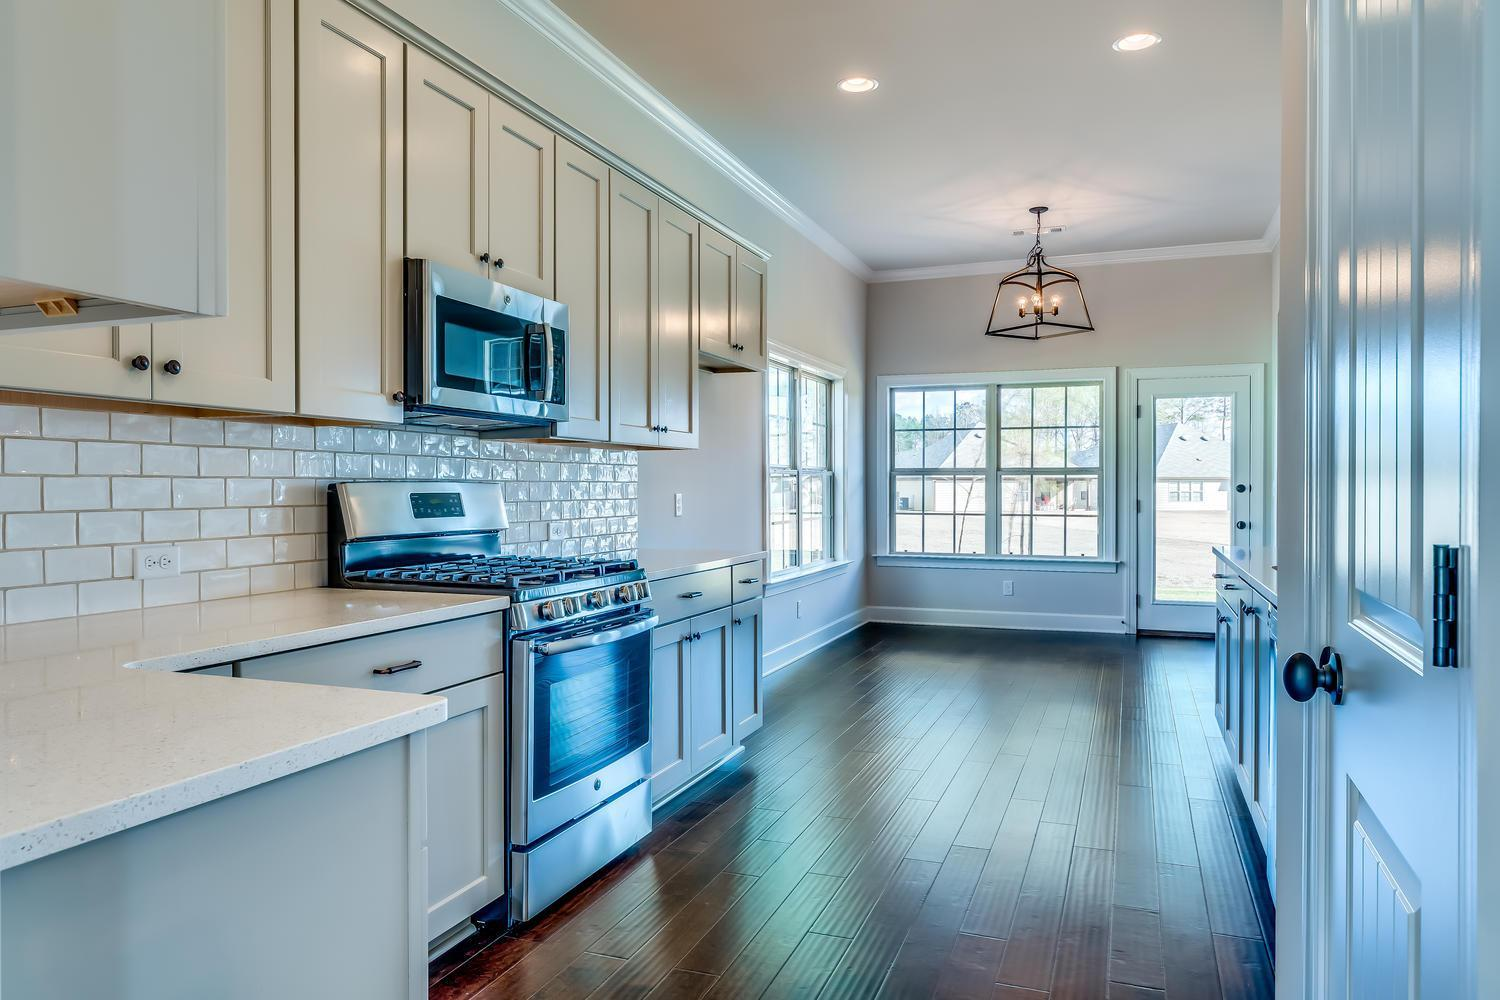 Kitchen featured in the Clear Water  w/bonus Woodland Creek By Lowder New Homes in Montgomery, AL